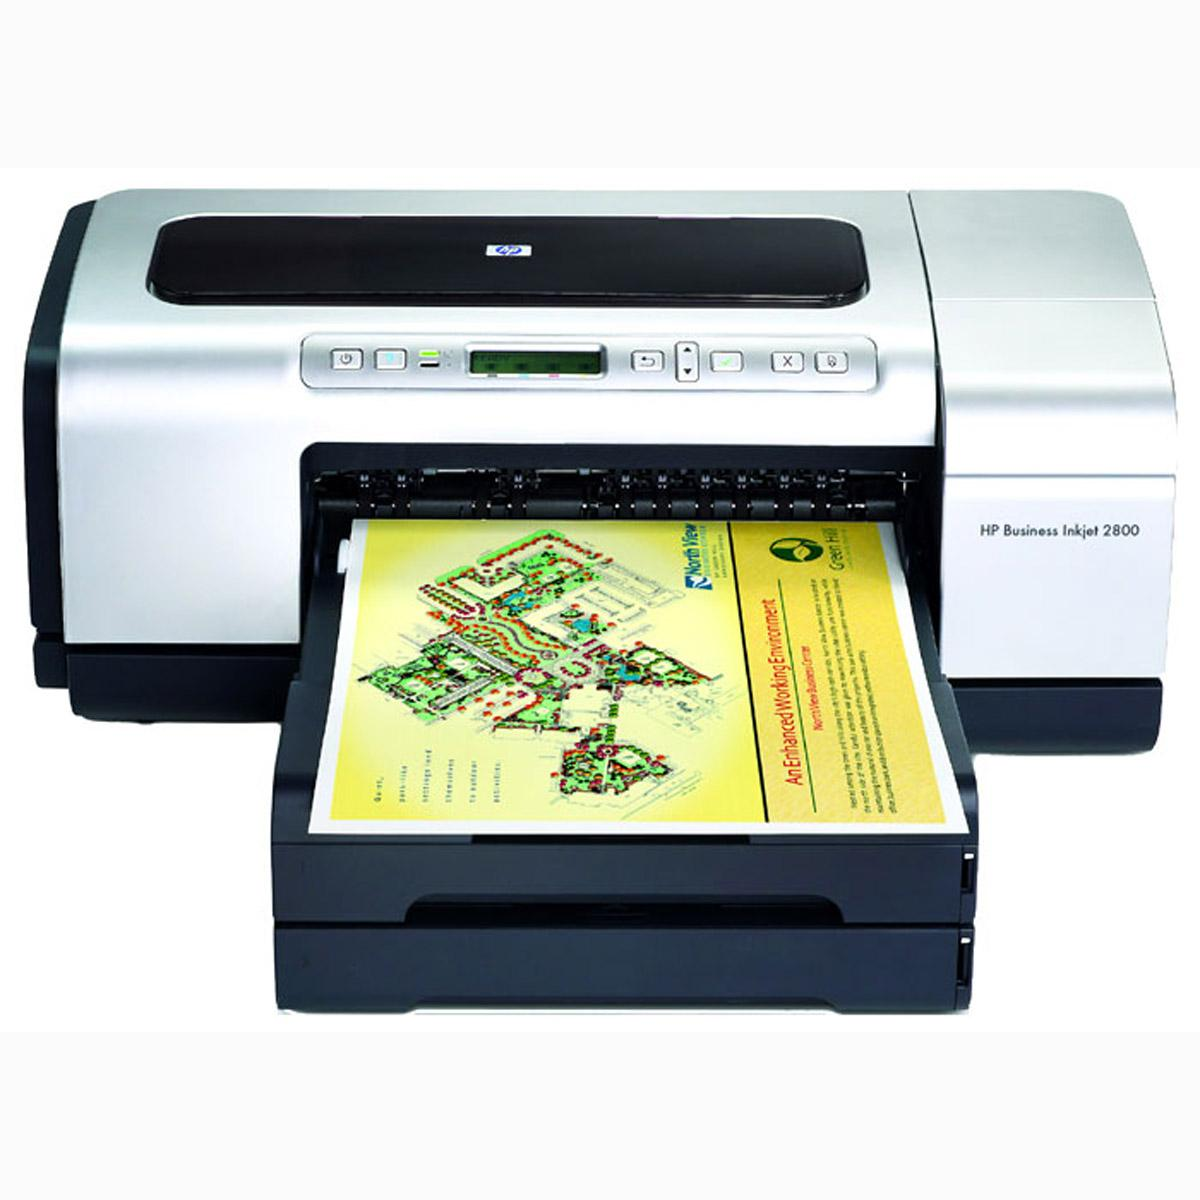 DOWNLOAD DRIVERS: HP DESKJET F2800 PRINTER